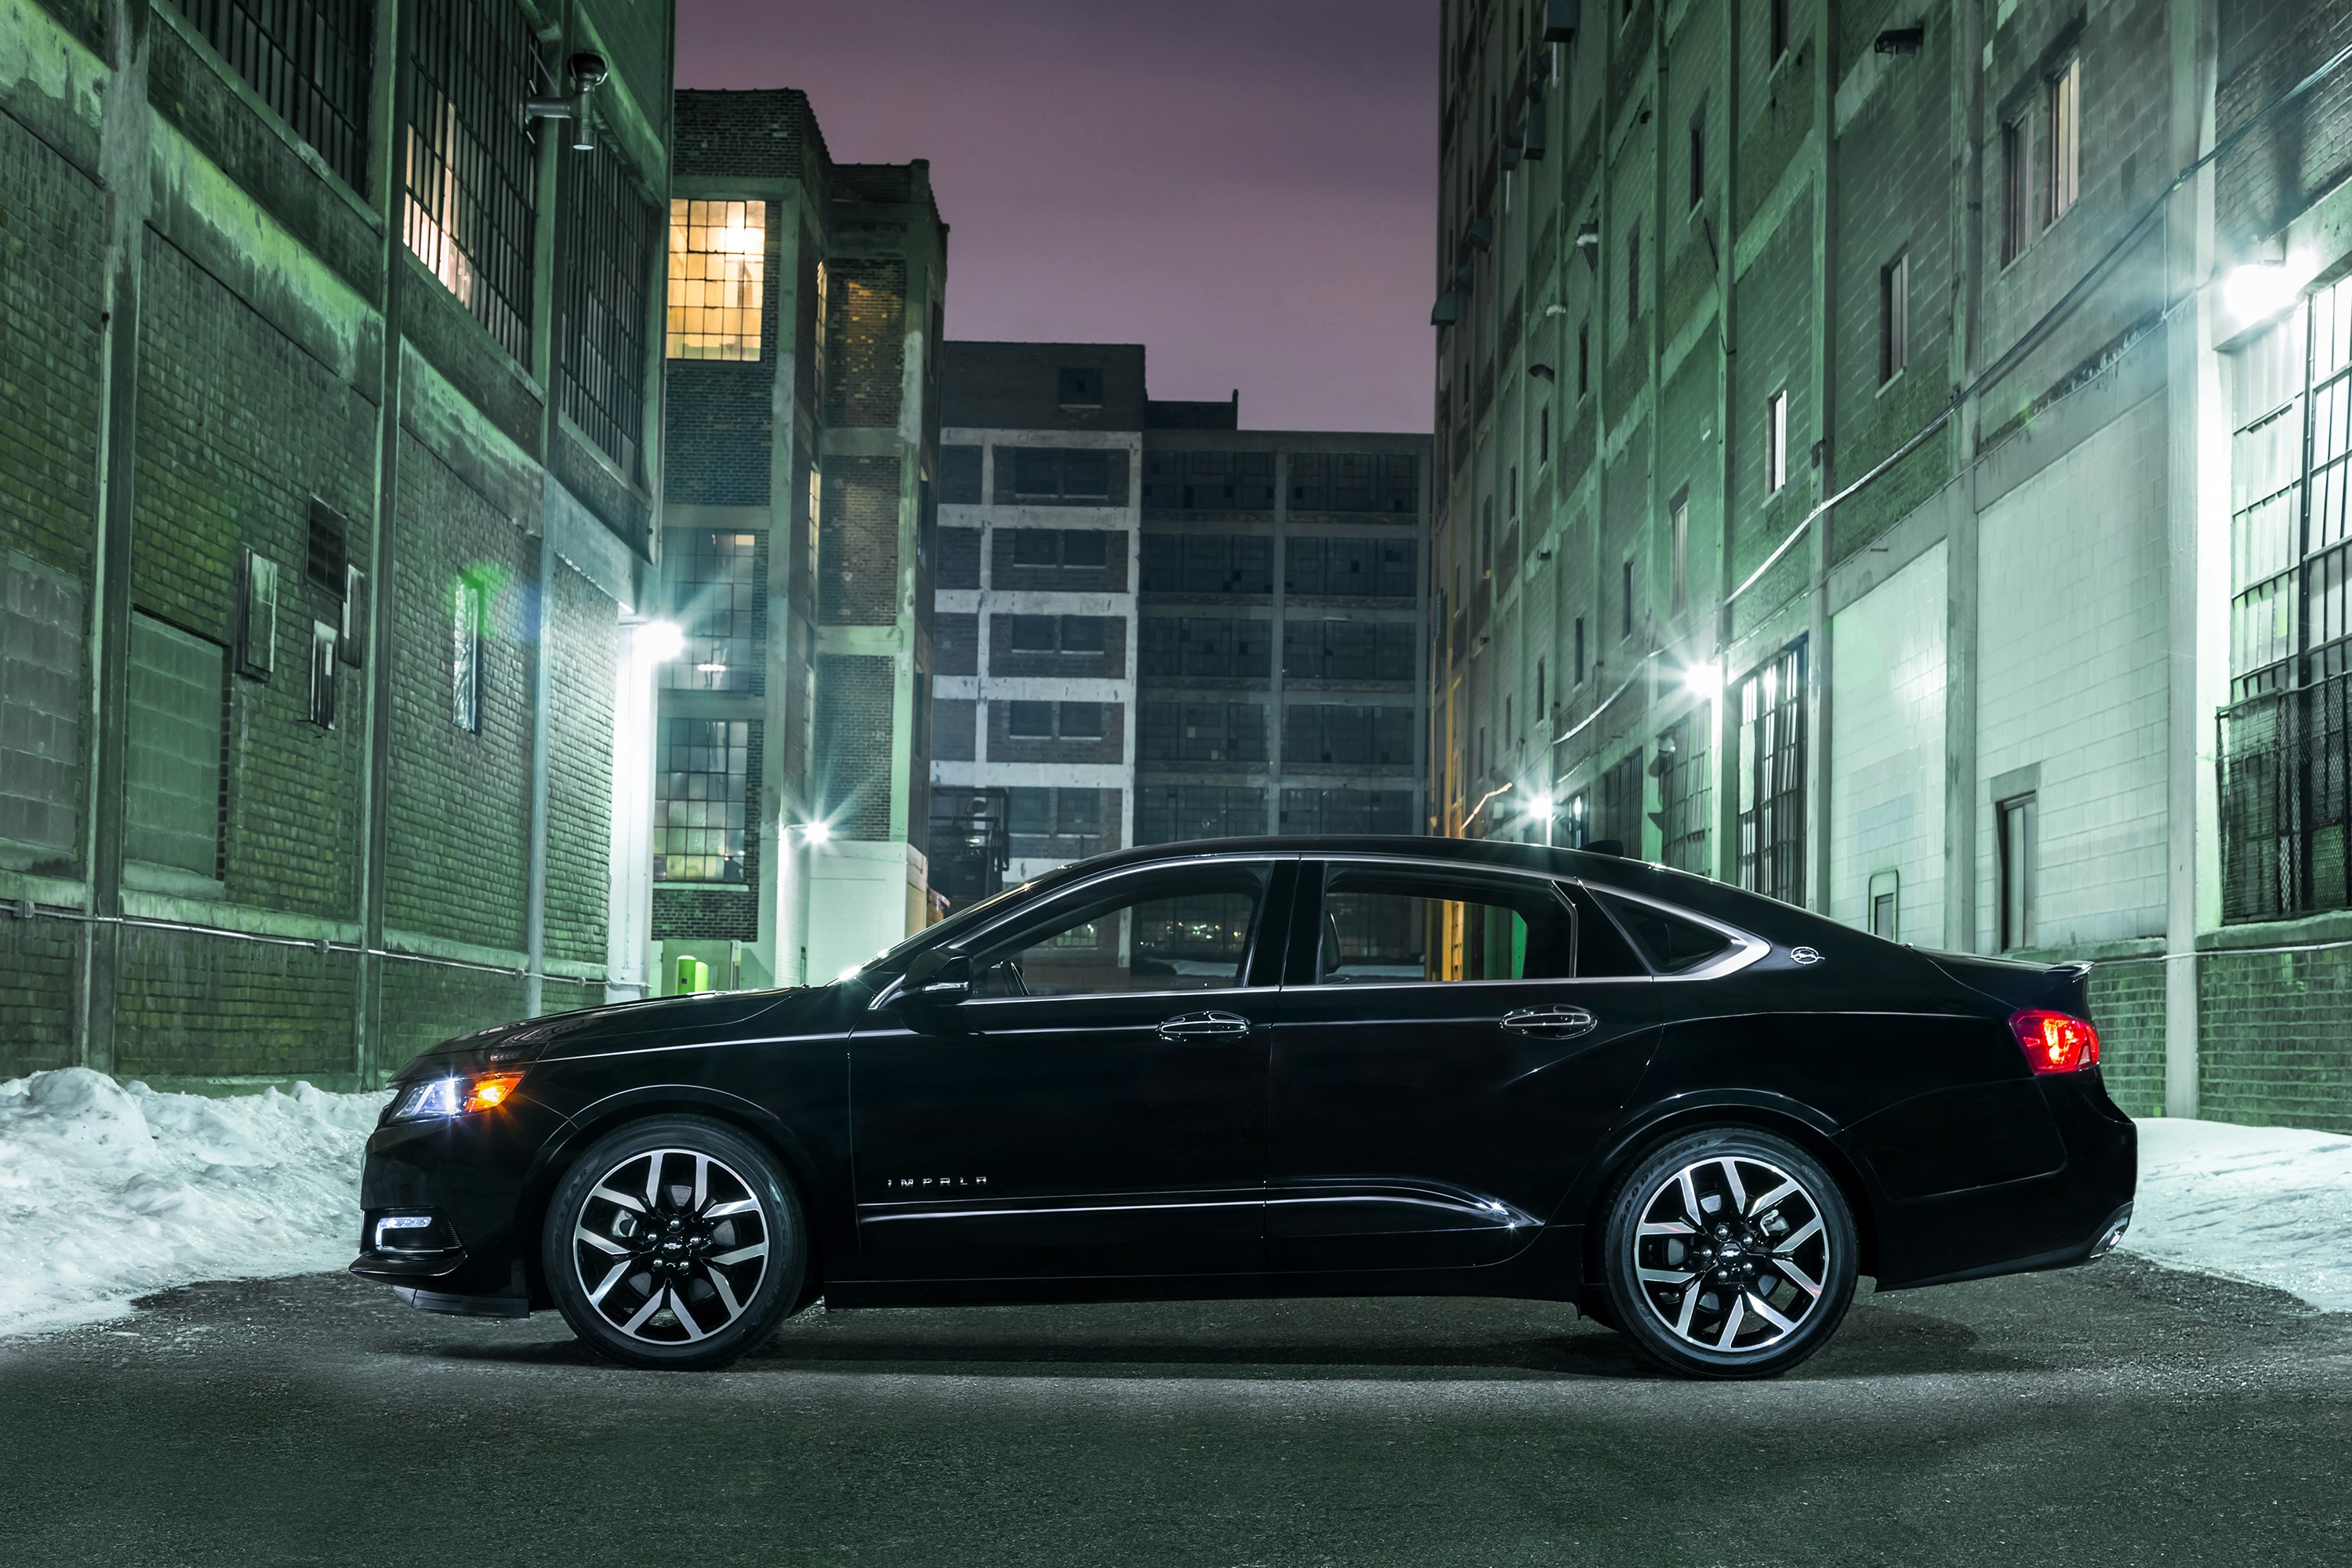 2016 Chevrolet Impala Midnight Edition Now Available to Order - autoevolution